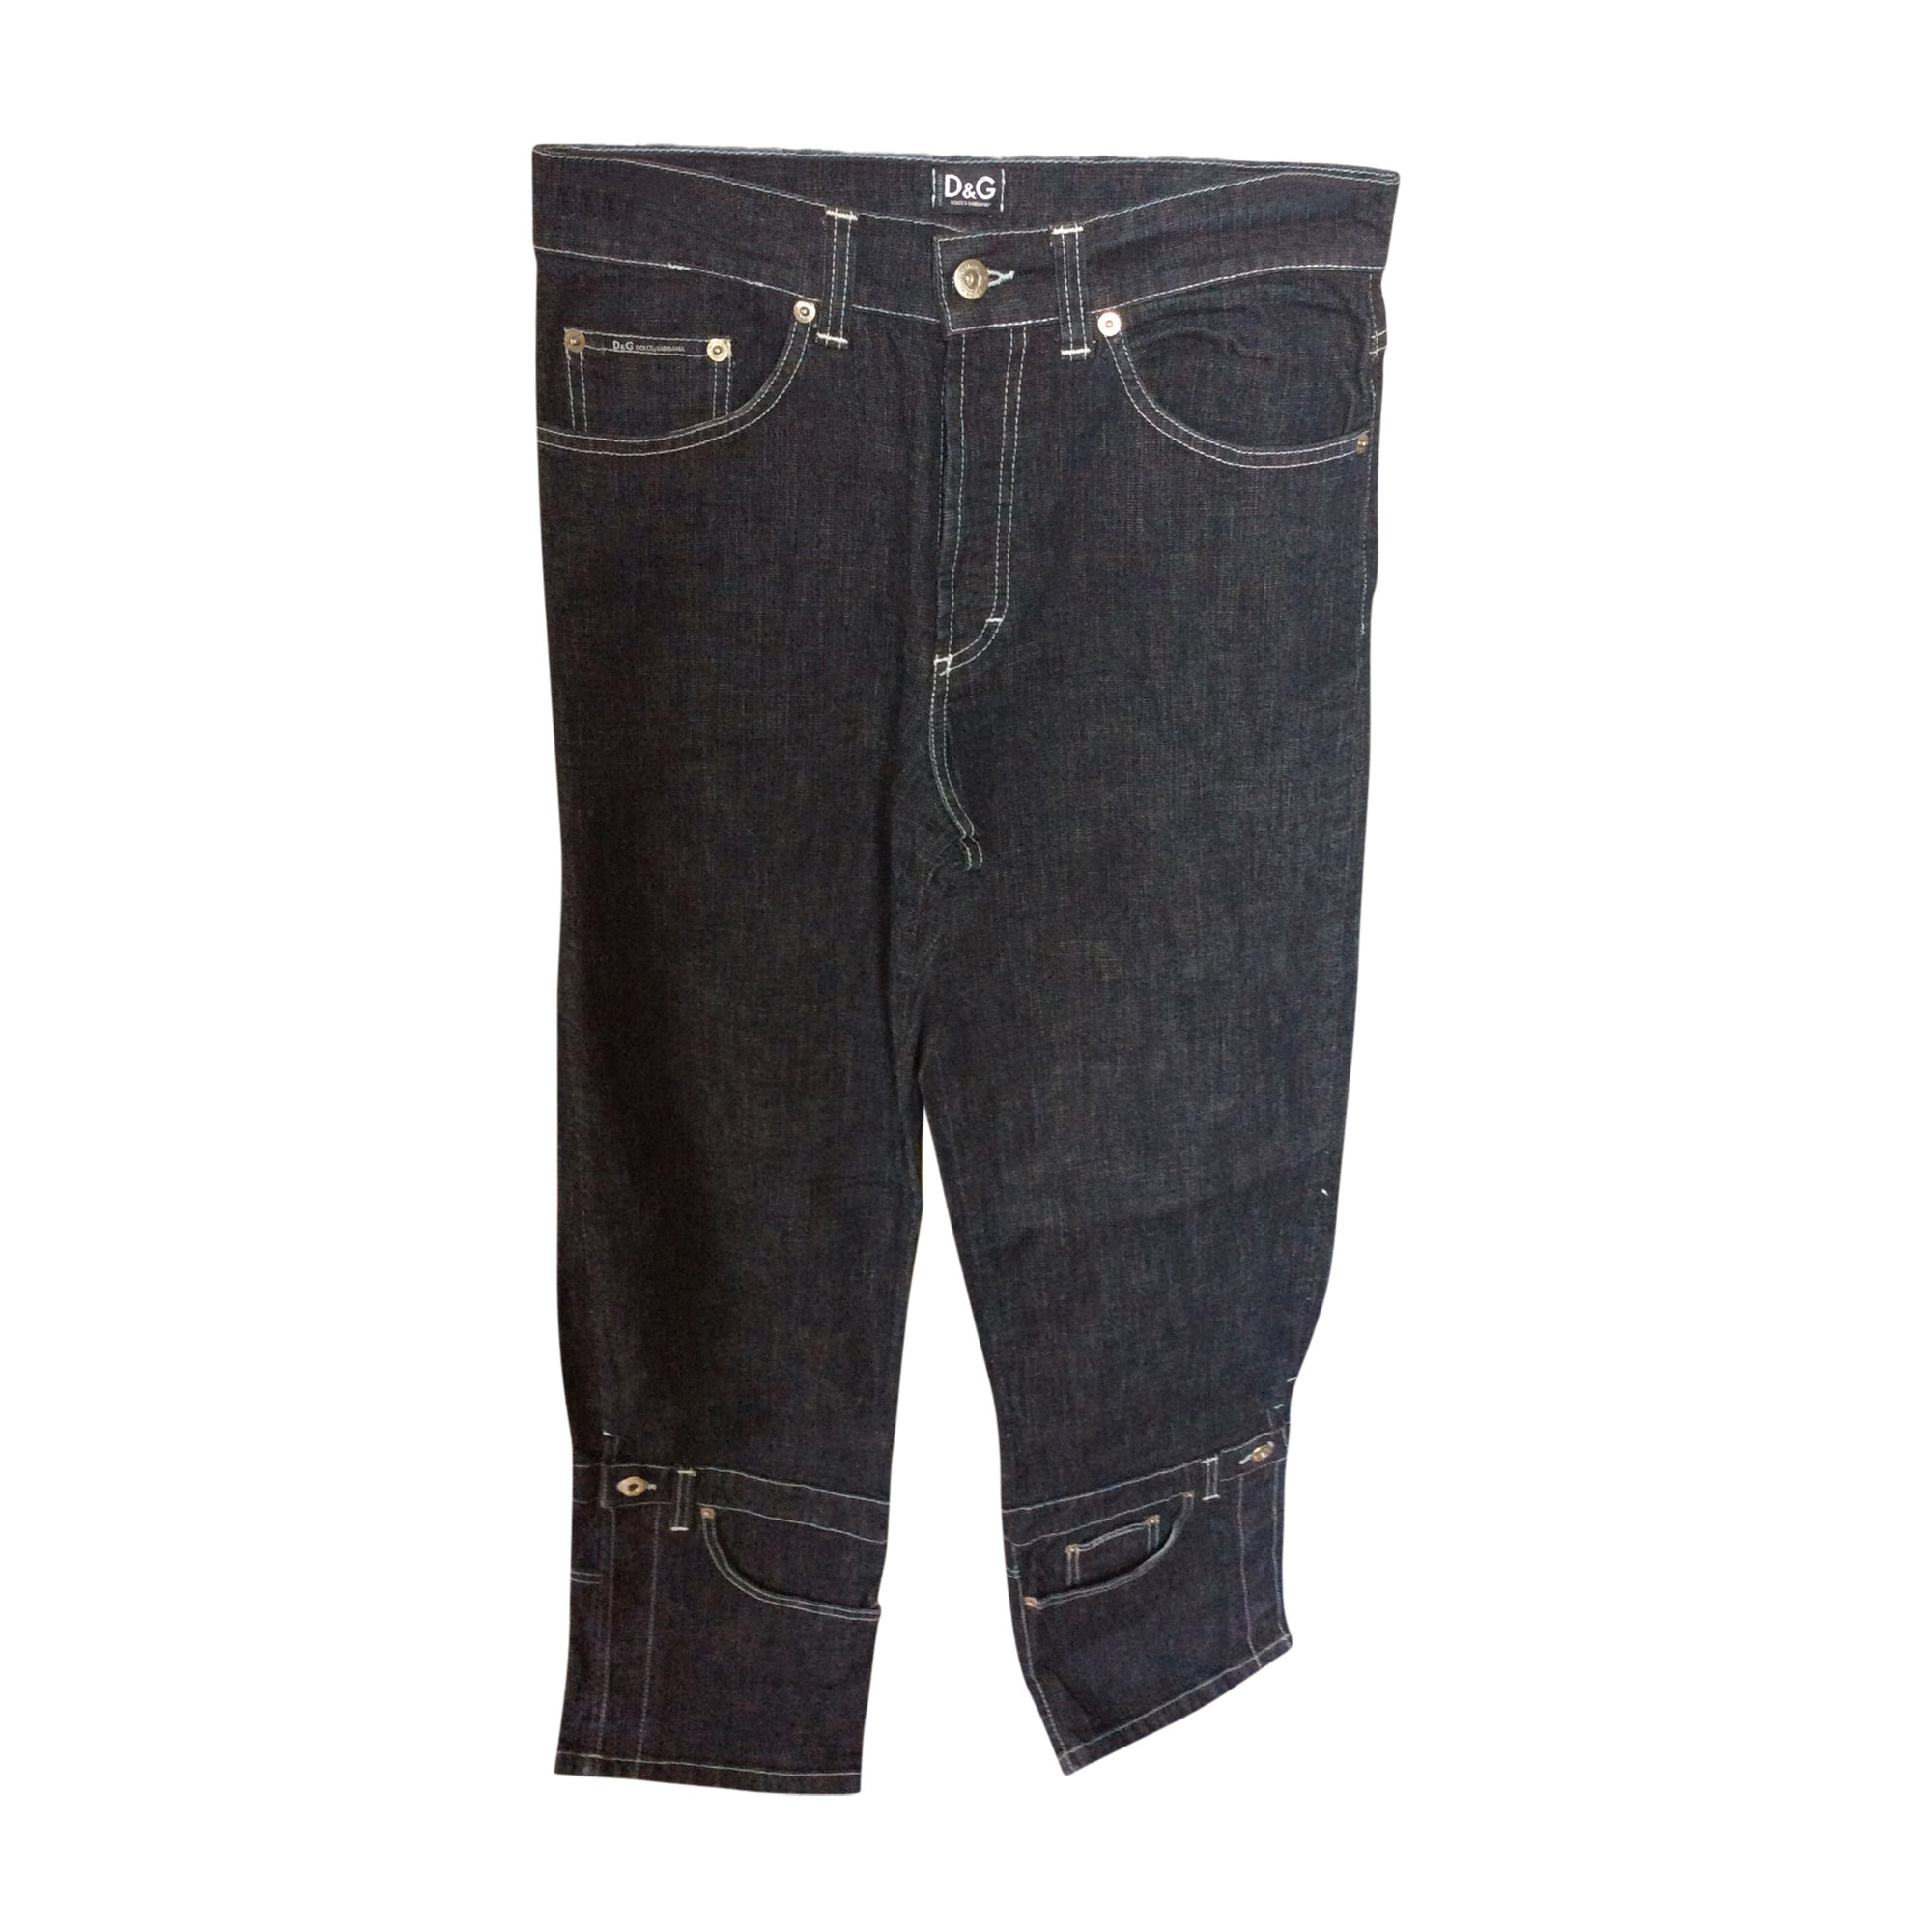 Boot-cut Jeans, Flares DOLCE & GABBANA Blue, navy, turquoise